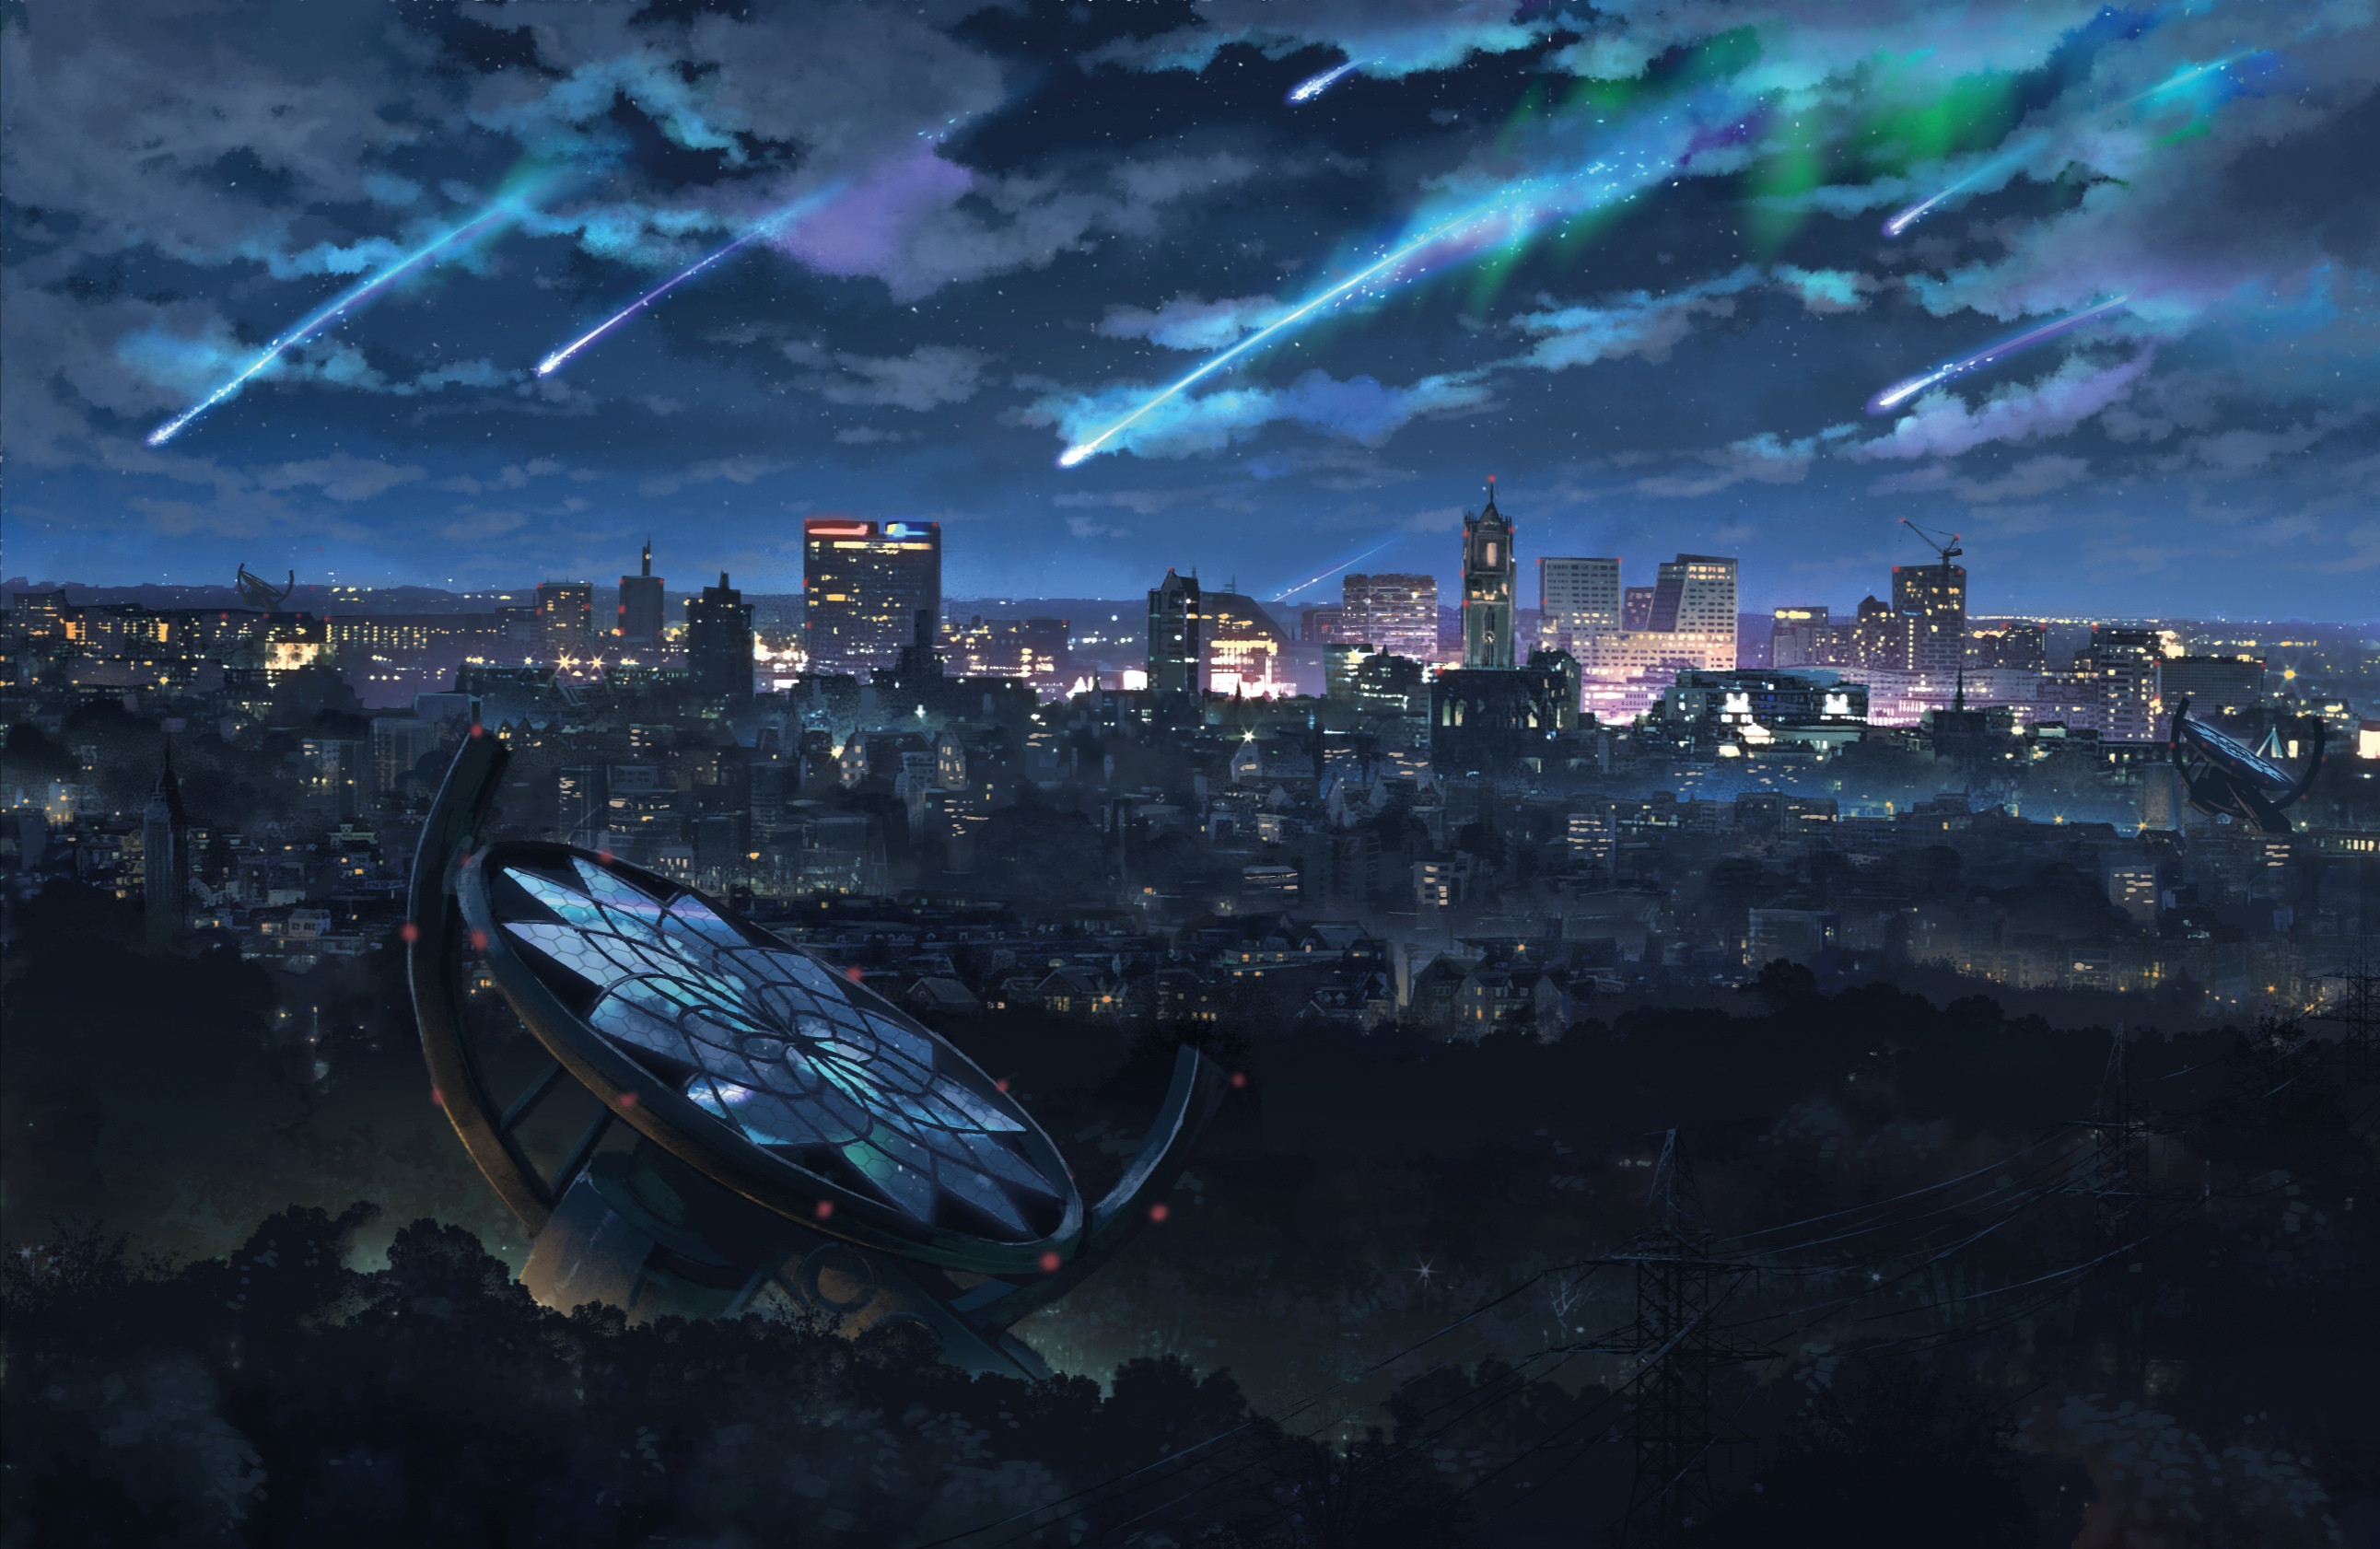 city at night with dreamcatcher starlight panels heavily inspired by the movie  'your name'